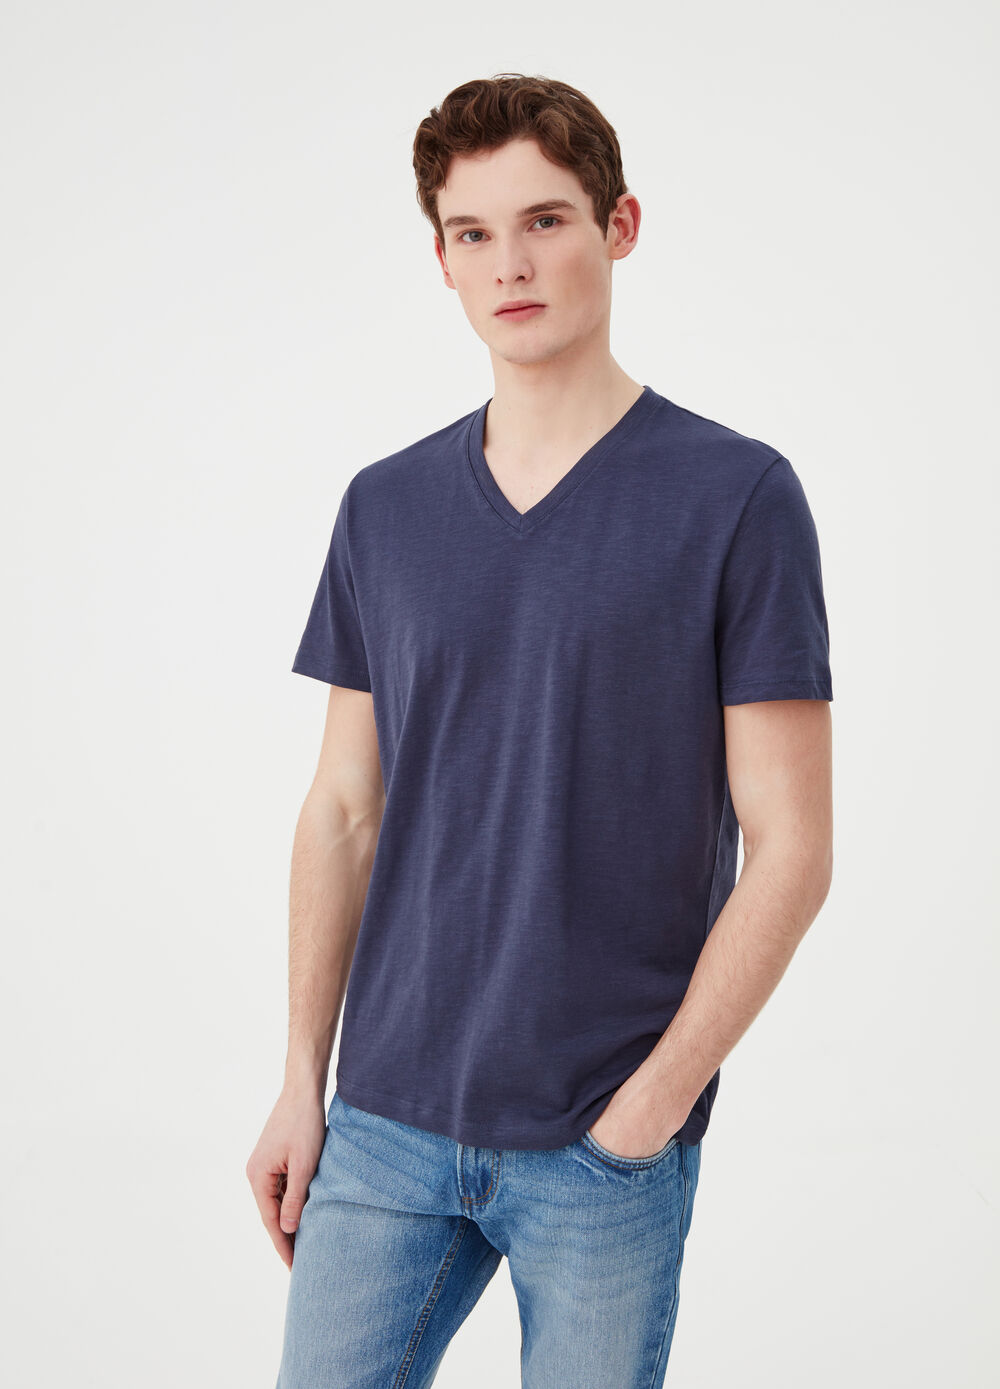 V-neck T-shirt in 100% cotton jersey